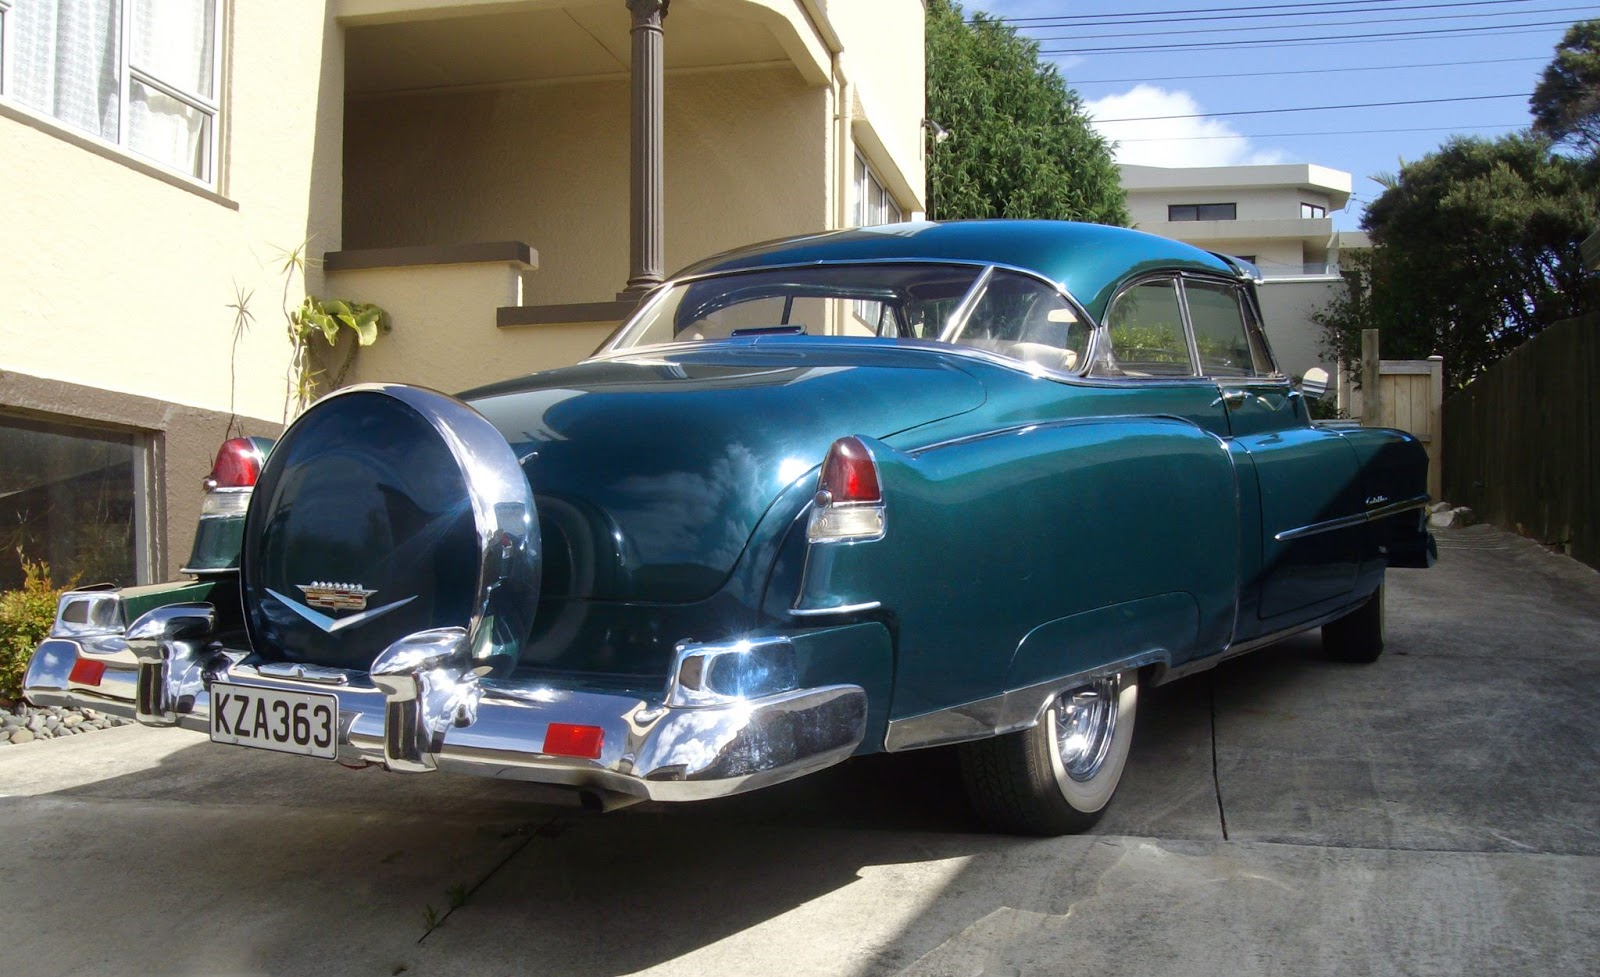 Transpress Nz 1951 Cadillac Coupe Deville Series 62